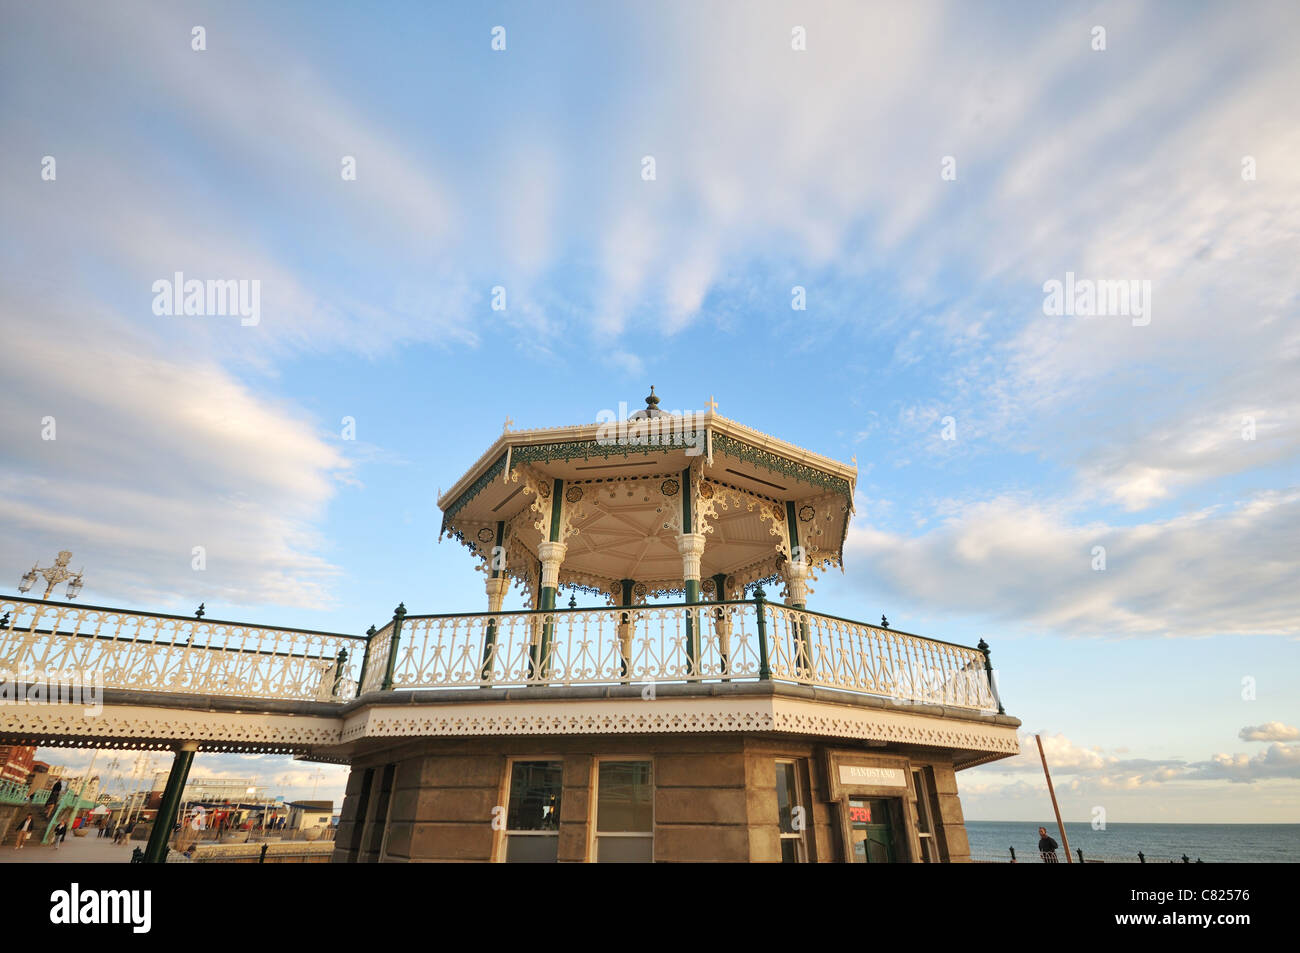 The recently renovated Victorian Brighton Bandstand (Birdcage), Brighton seafront, East Sussex, UK - Stock Image